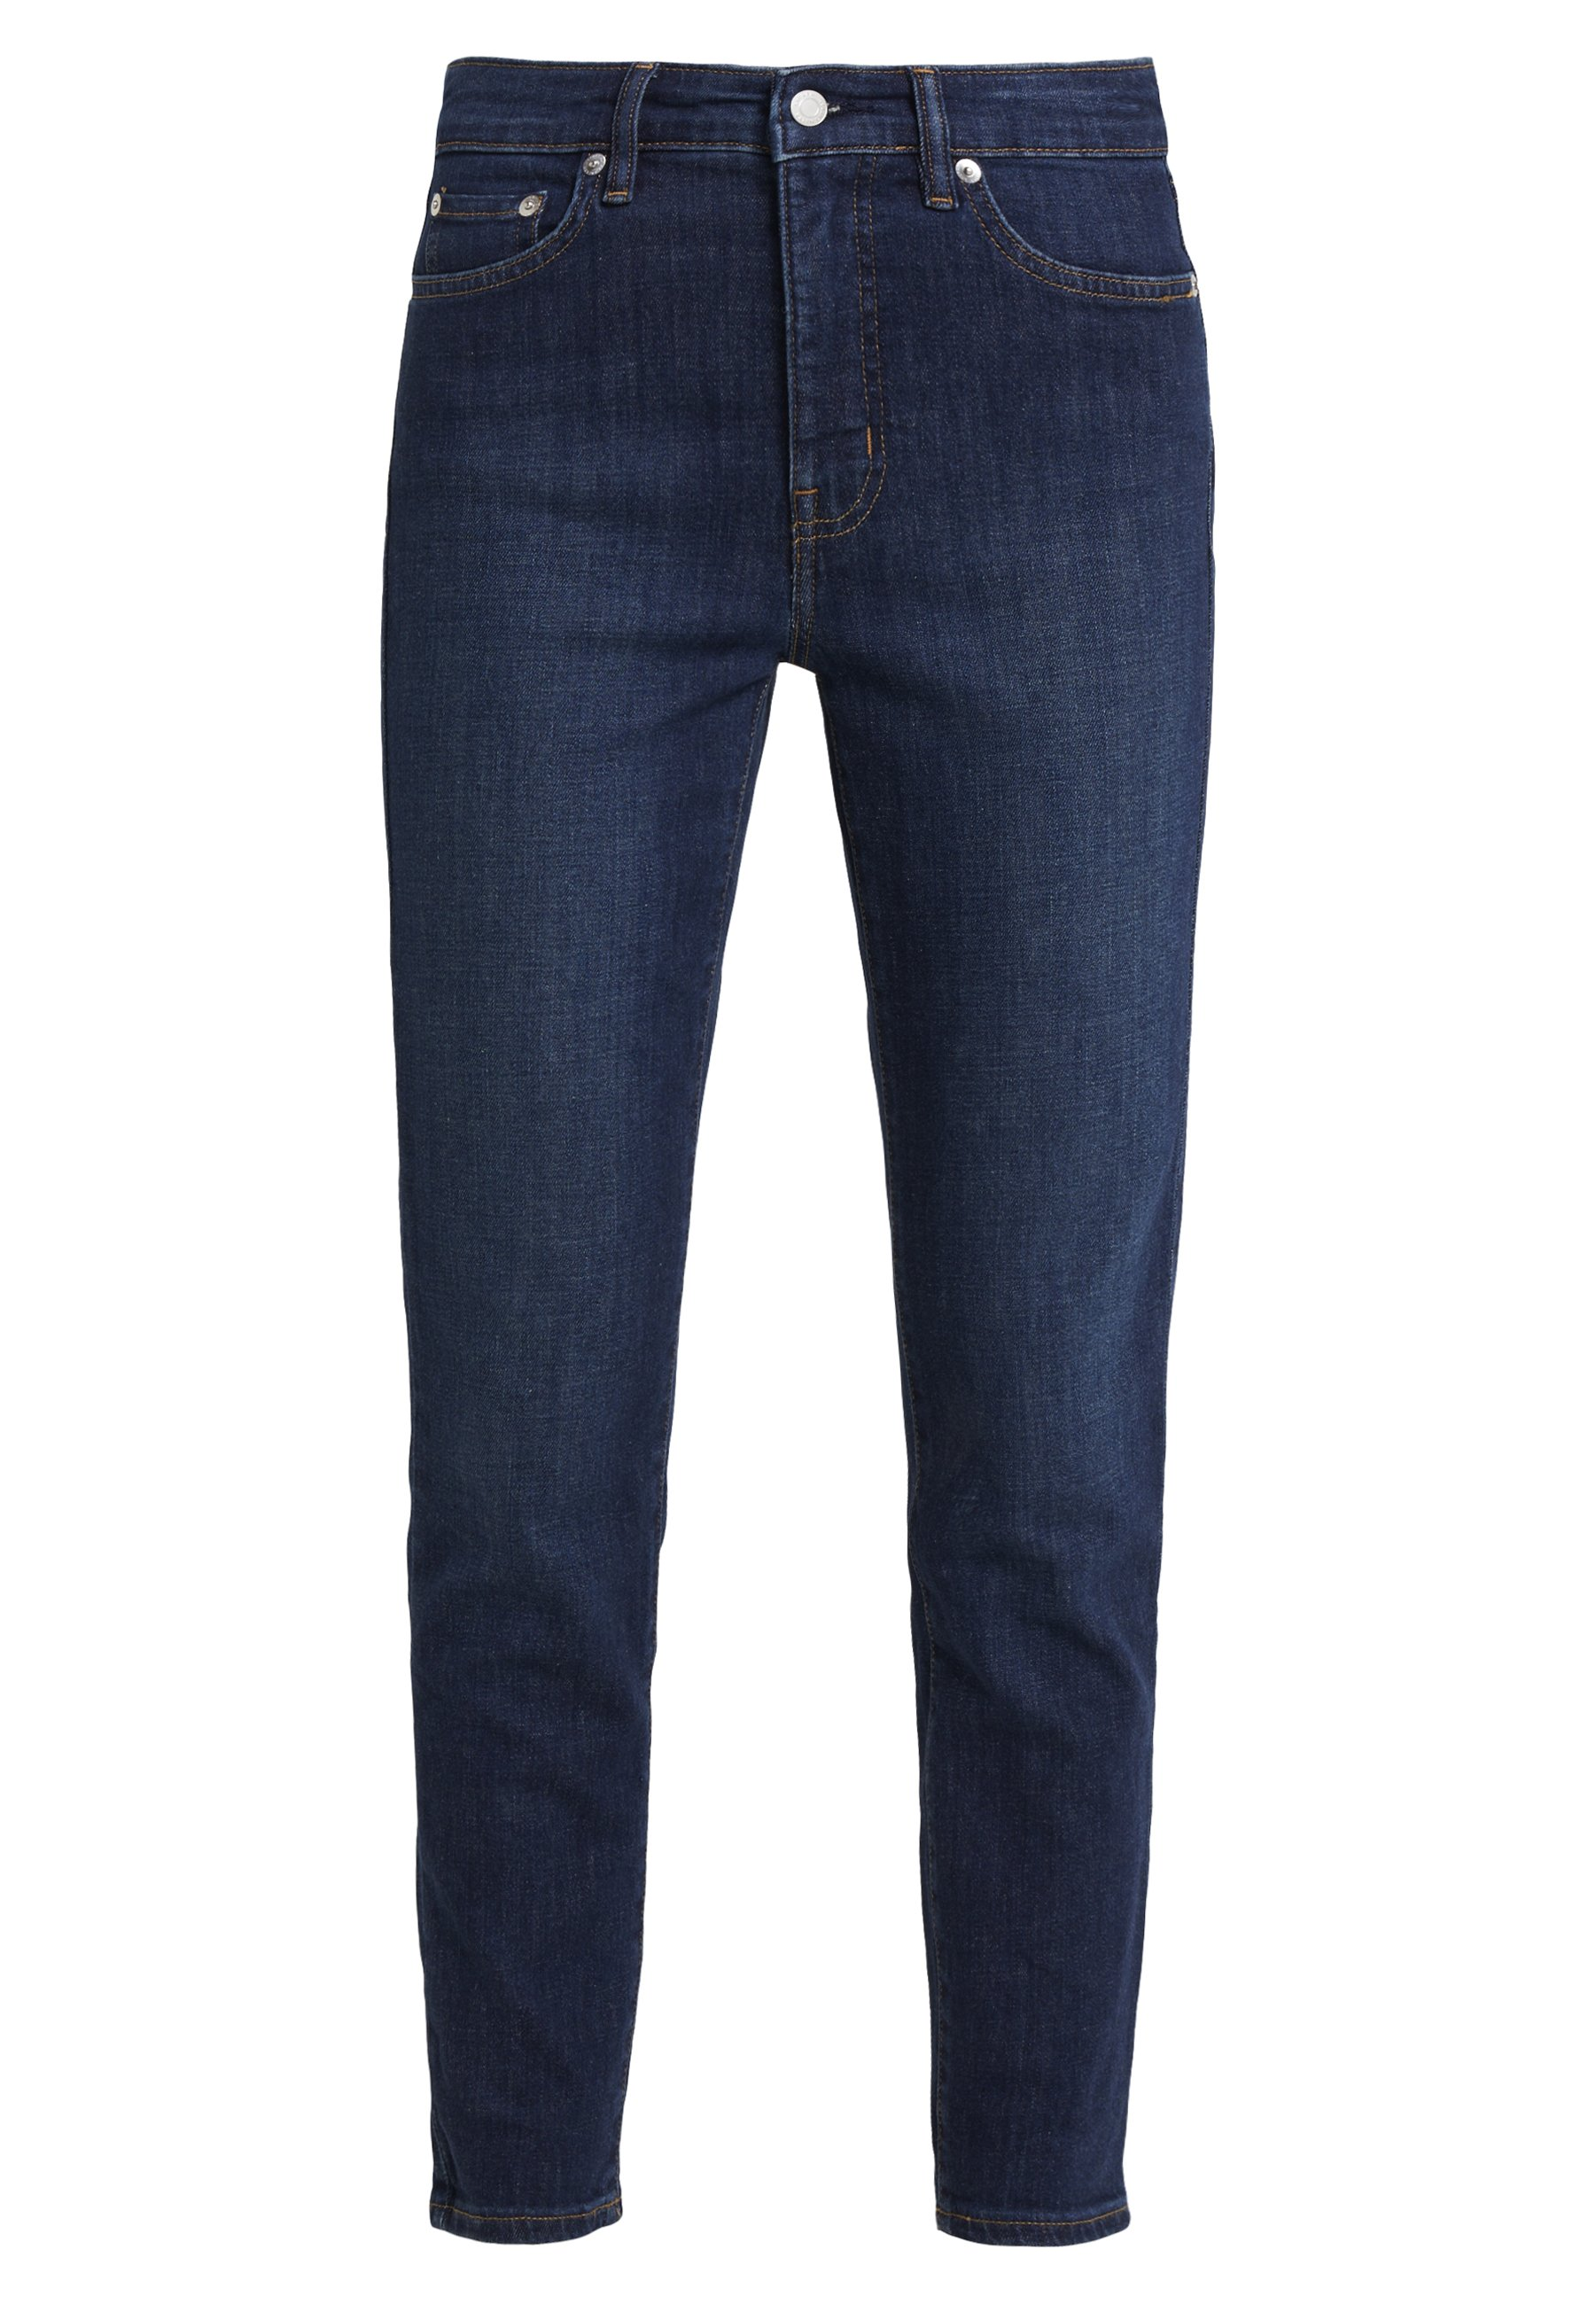 Lauren Ralph Lauren Jeansy Skinny Fit - dark worn wash